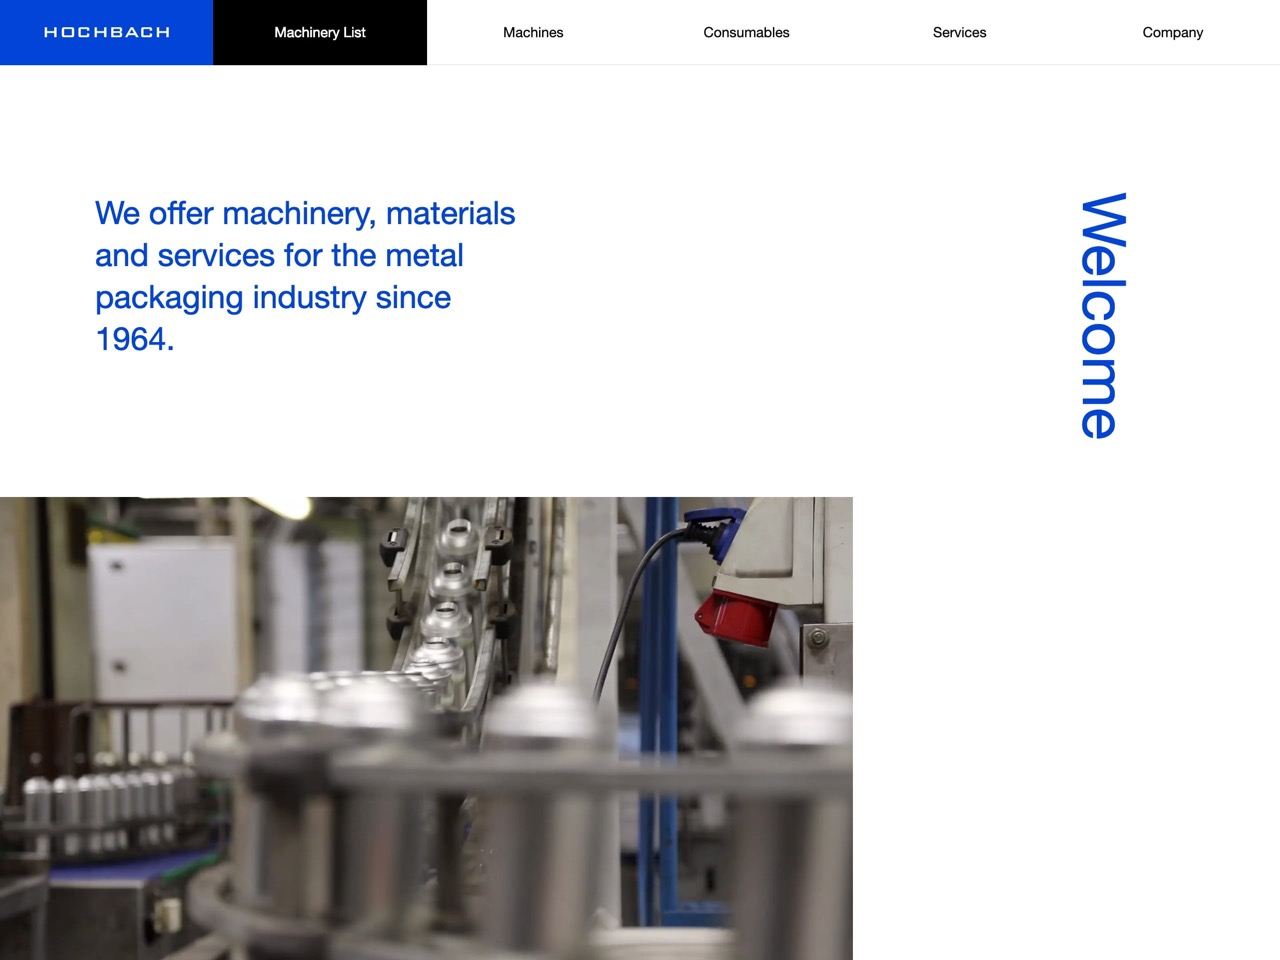 Hochbach gmbh   machinery  materials and services for the metal packaging industry